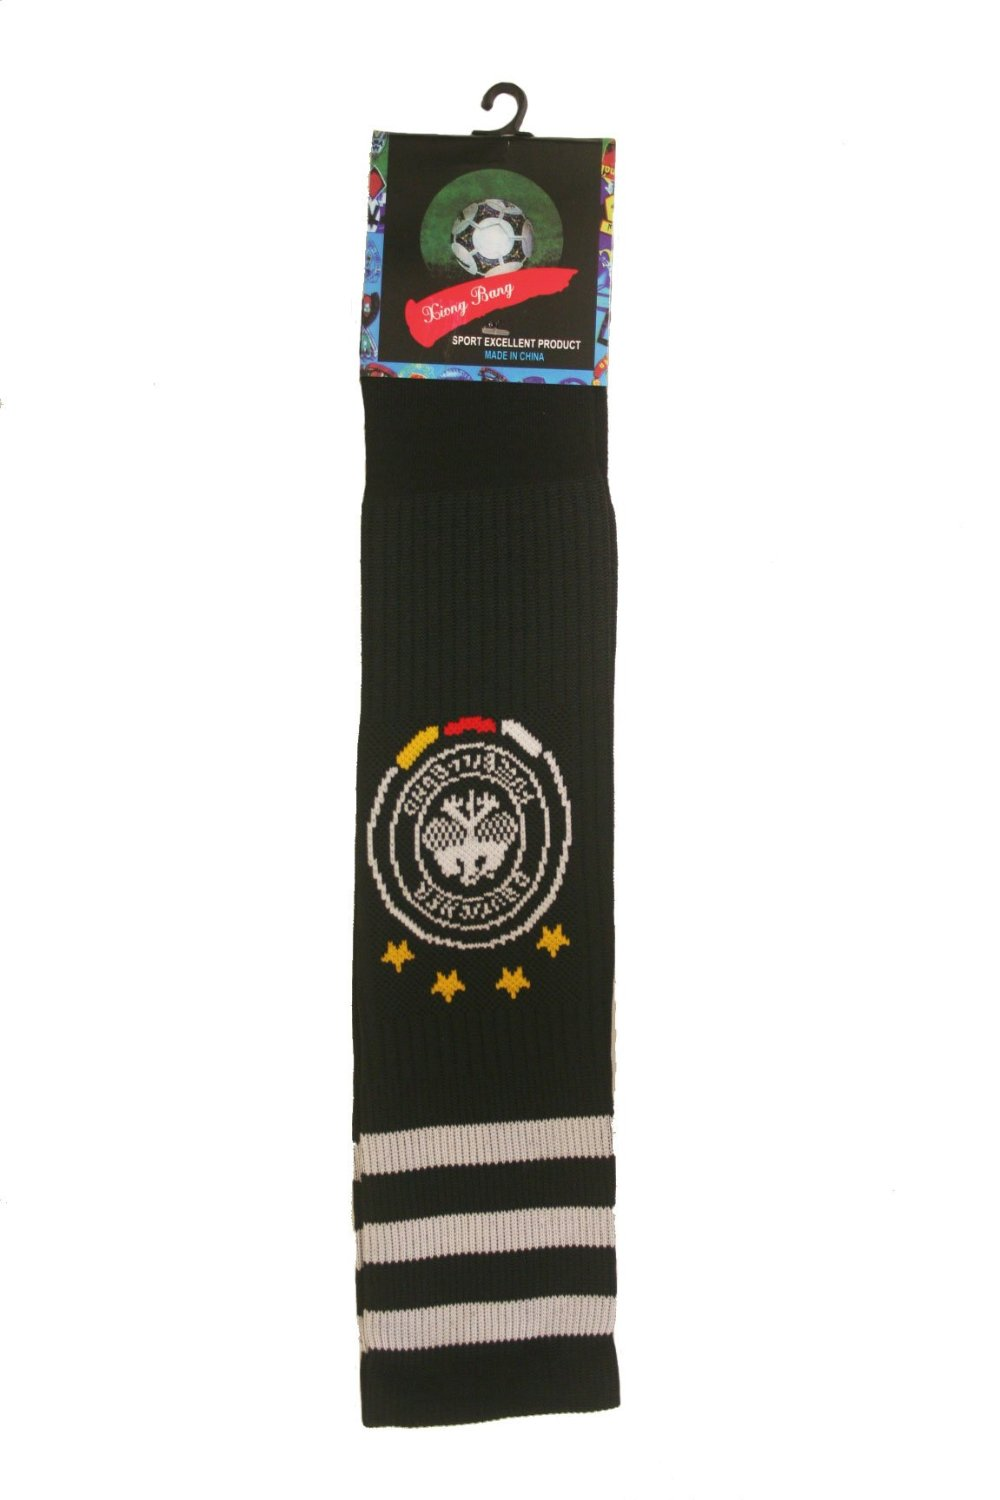 GERMANY DEUTSCHLAND Black 4 Stars World Cup SOCCER Socks .. Adult Size .. New